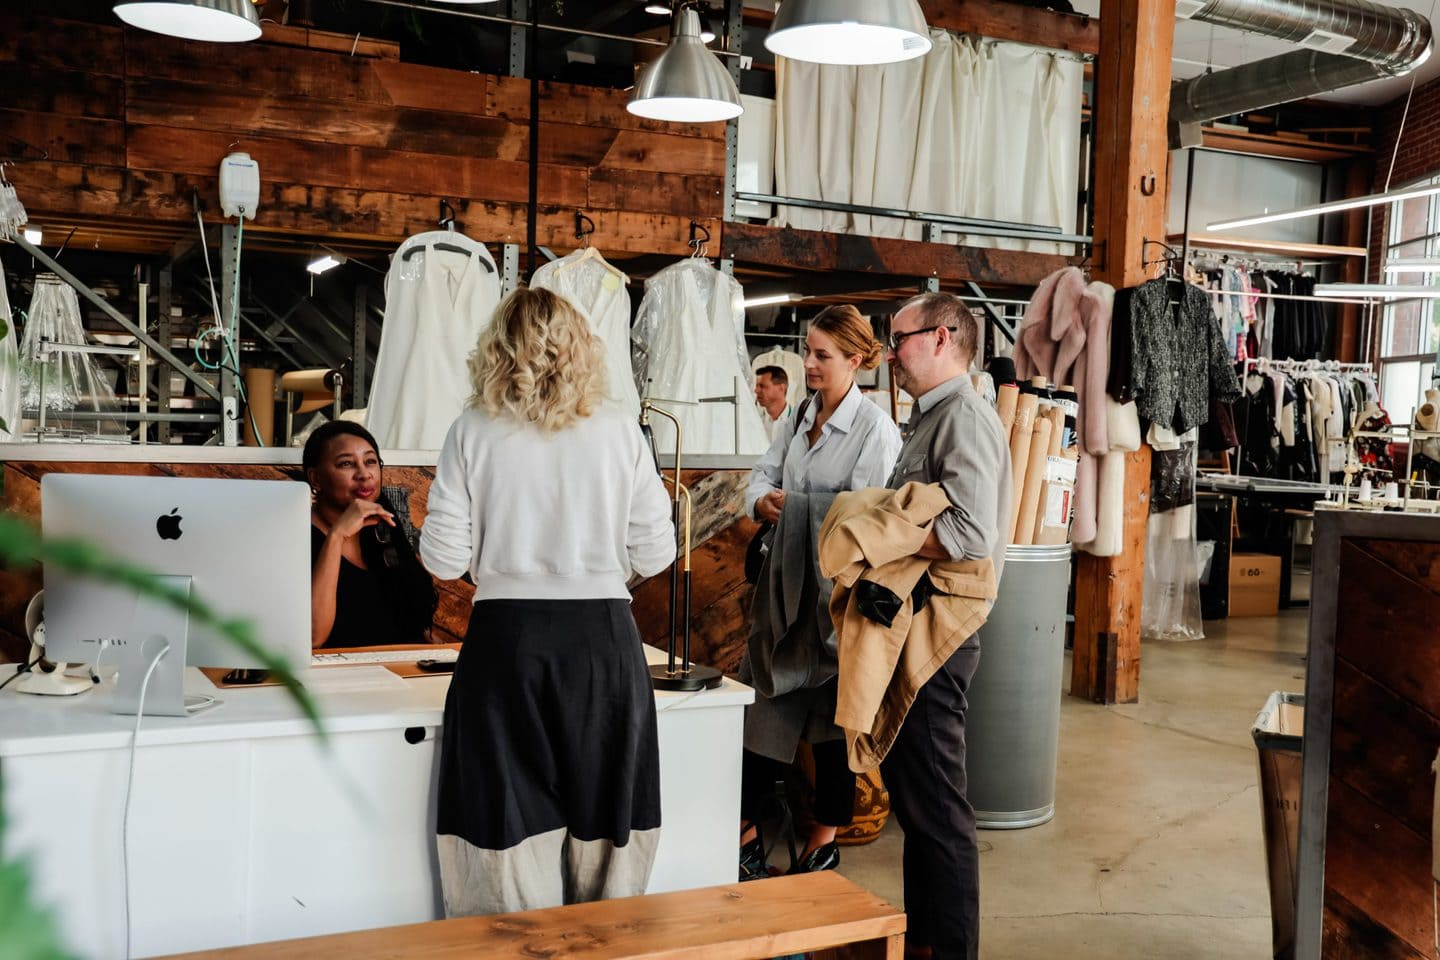 Four clothing manufacturers gathered around a desk discussing fashion